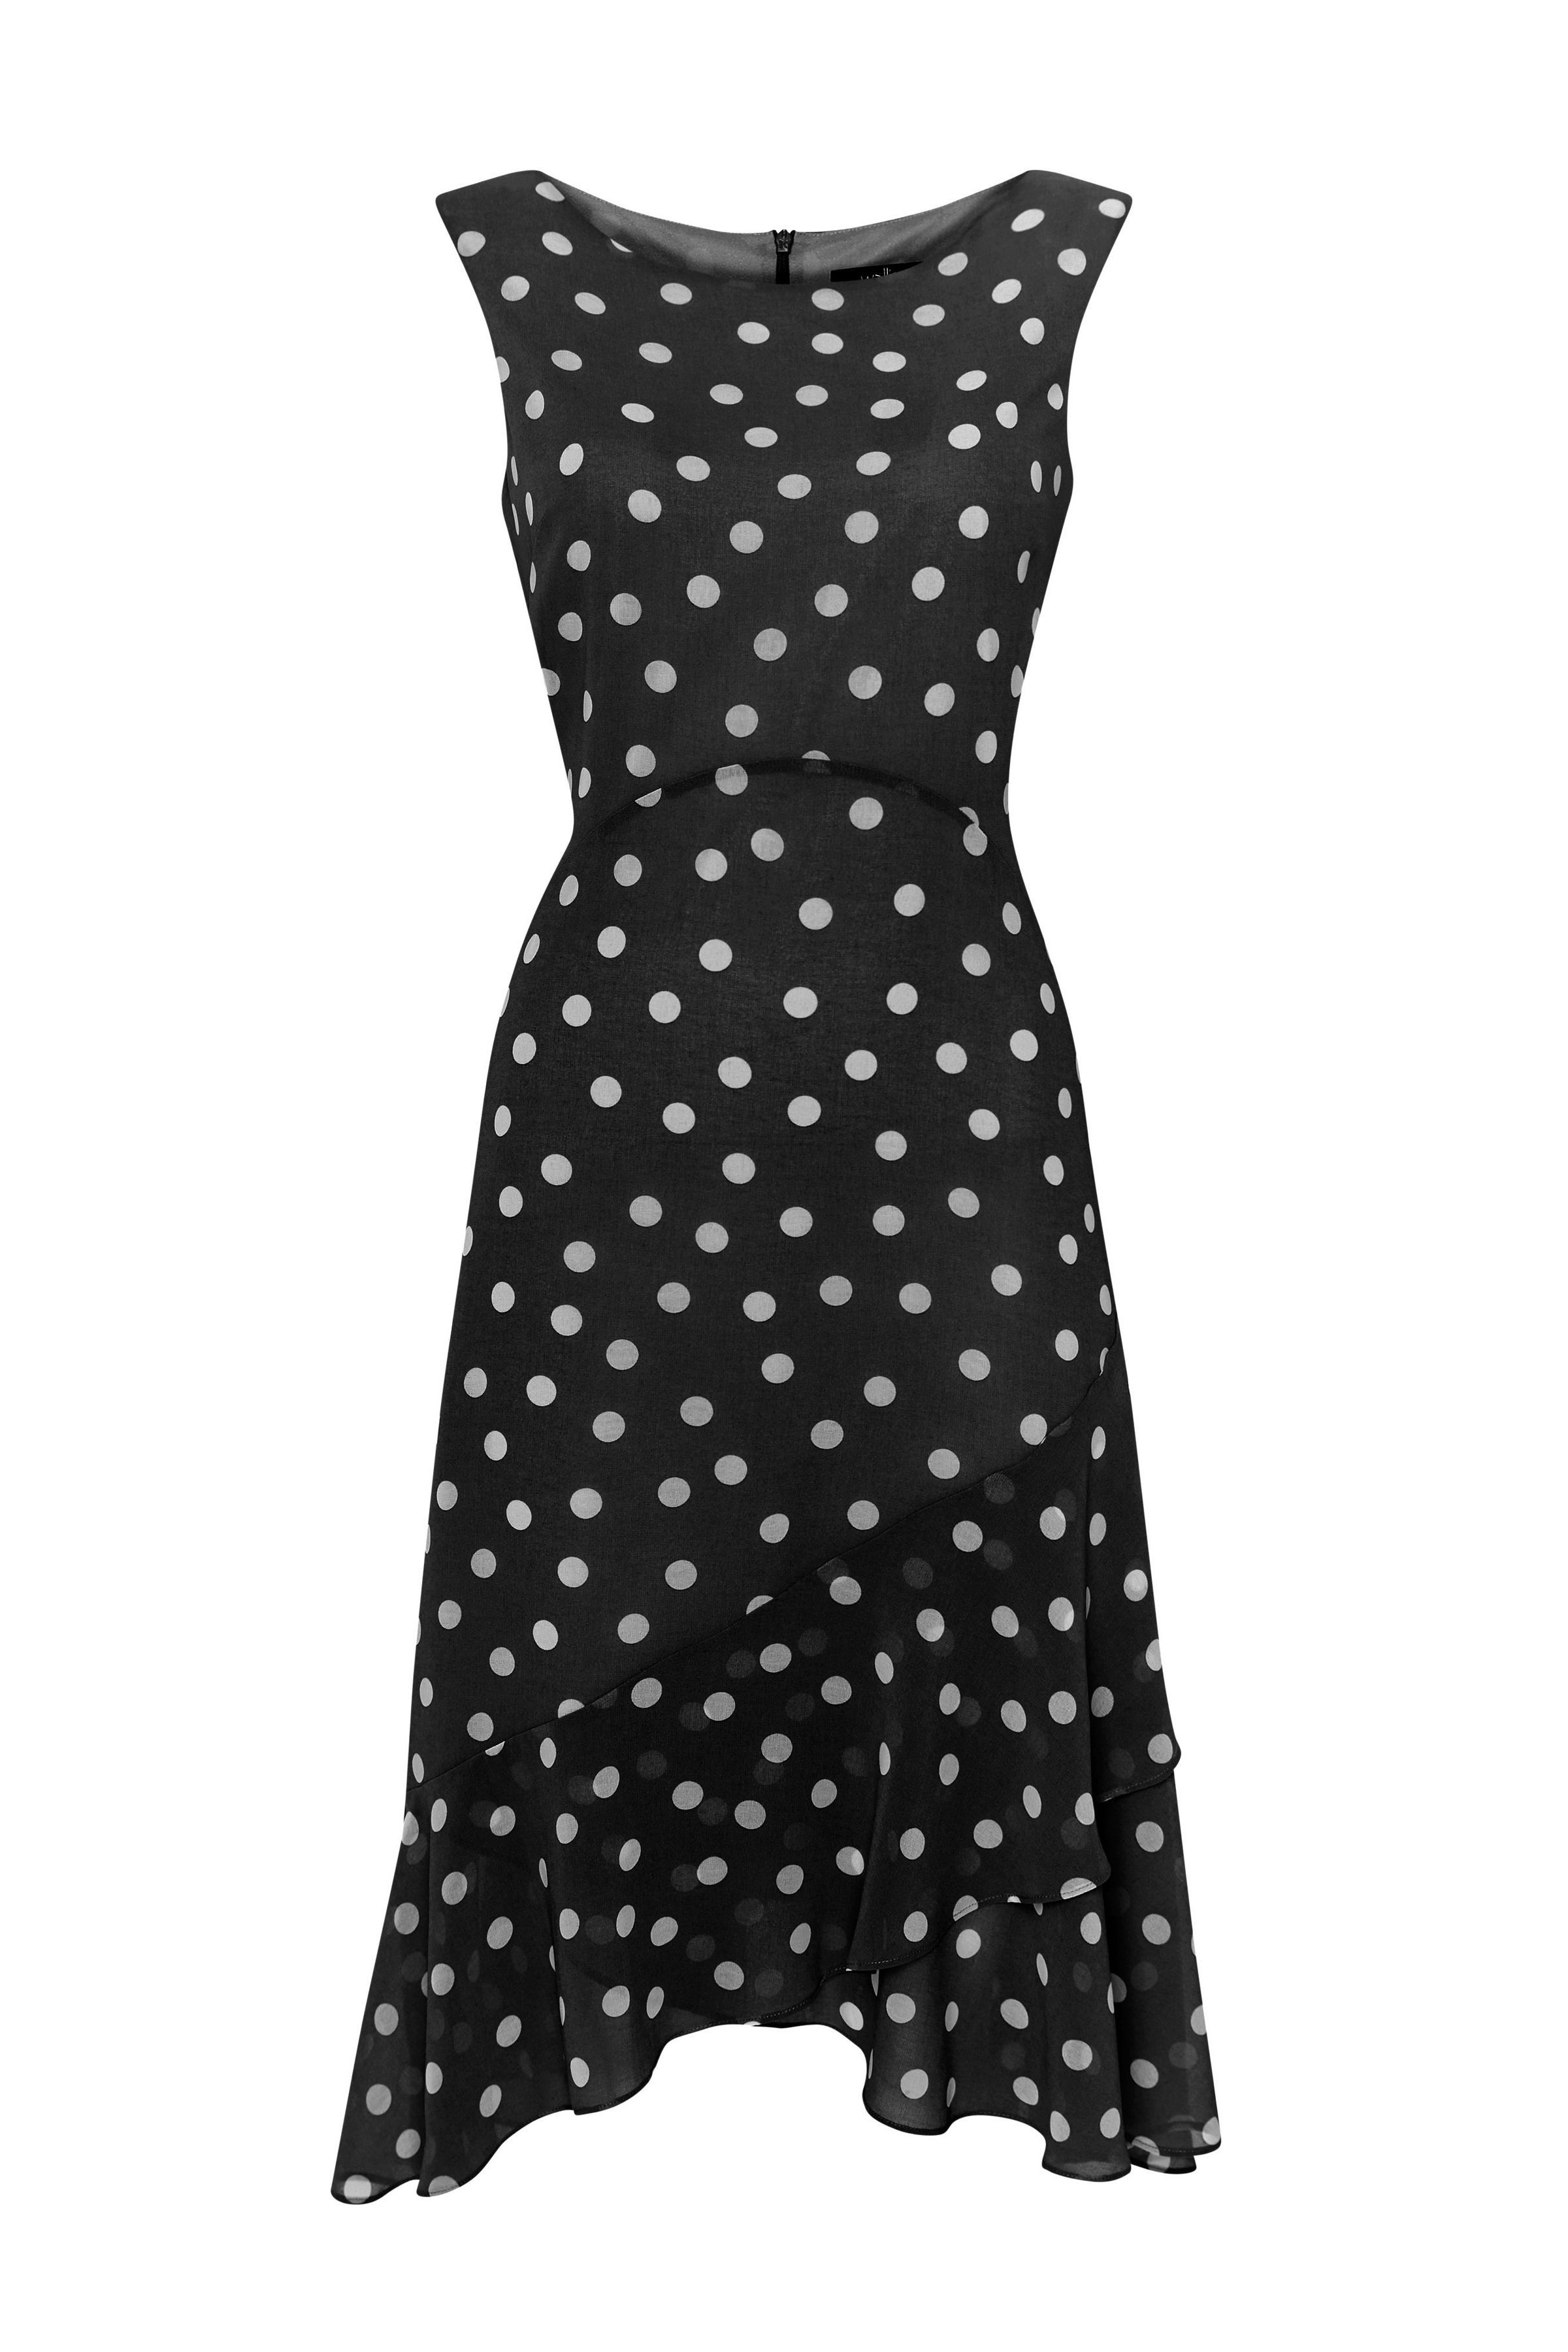 807fed7d5c776 Black Polka Dot Fit and Flare Dress in 2019 | Wish List | Dresses ...